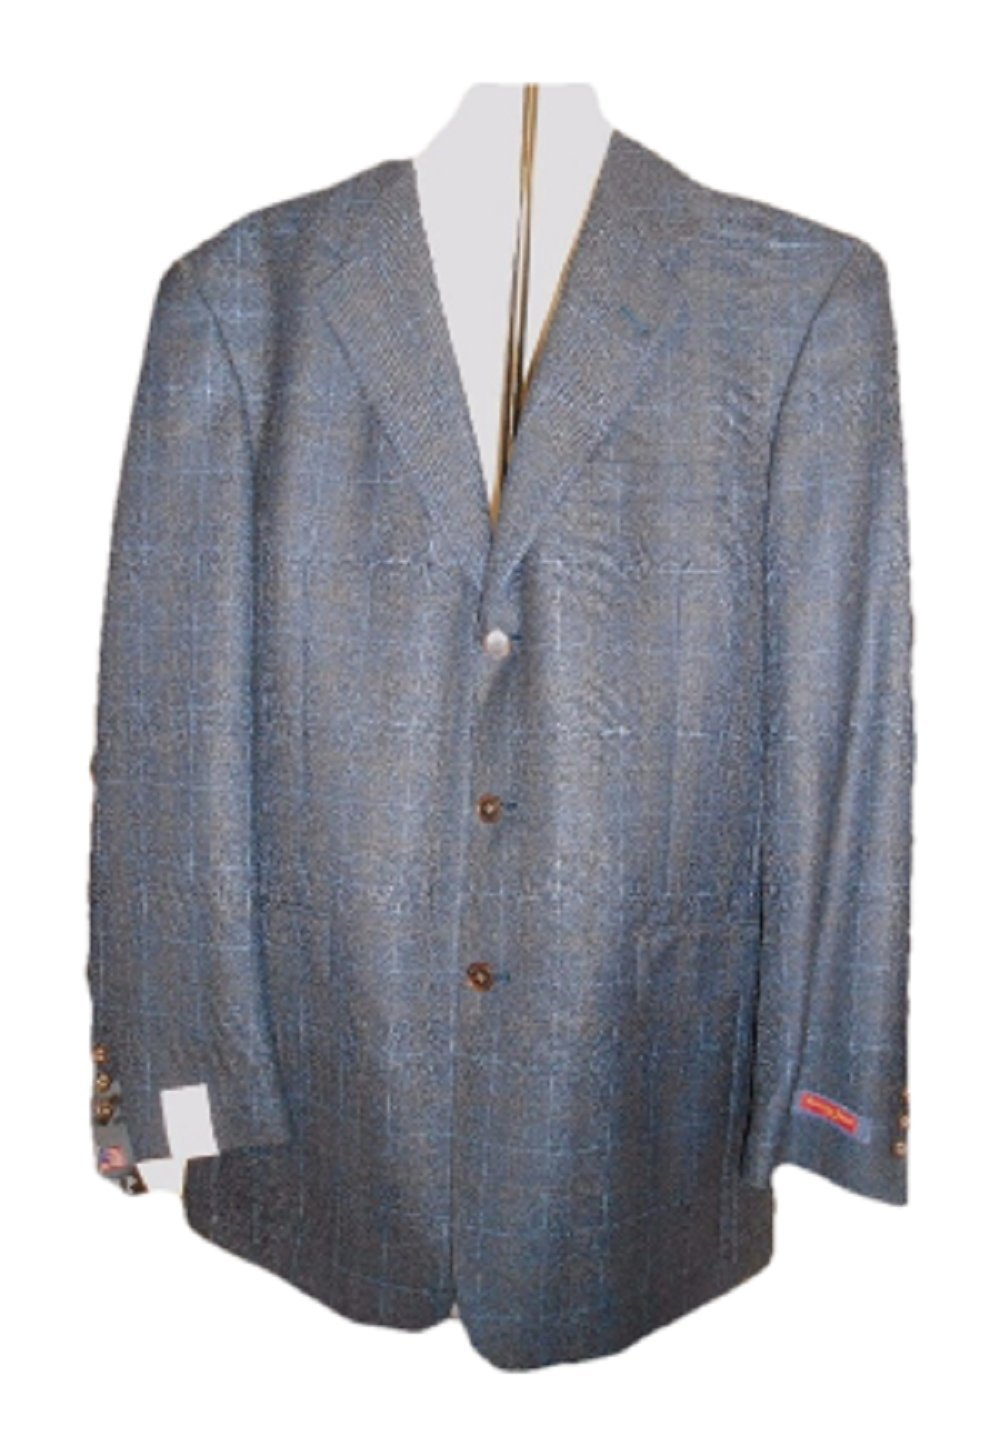 Austin Reed Men S Wool Plaid Blazer Jacket 42l Navy Plaid Buy Online In Aruba At Aruba Desertcart Com Productid 45095665